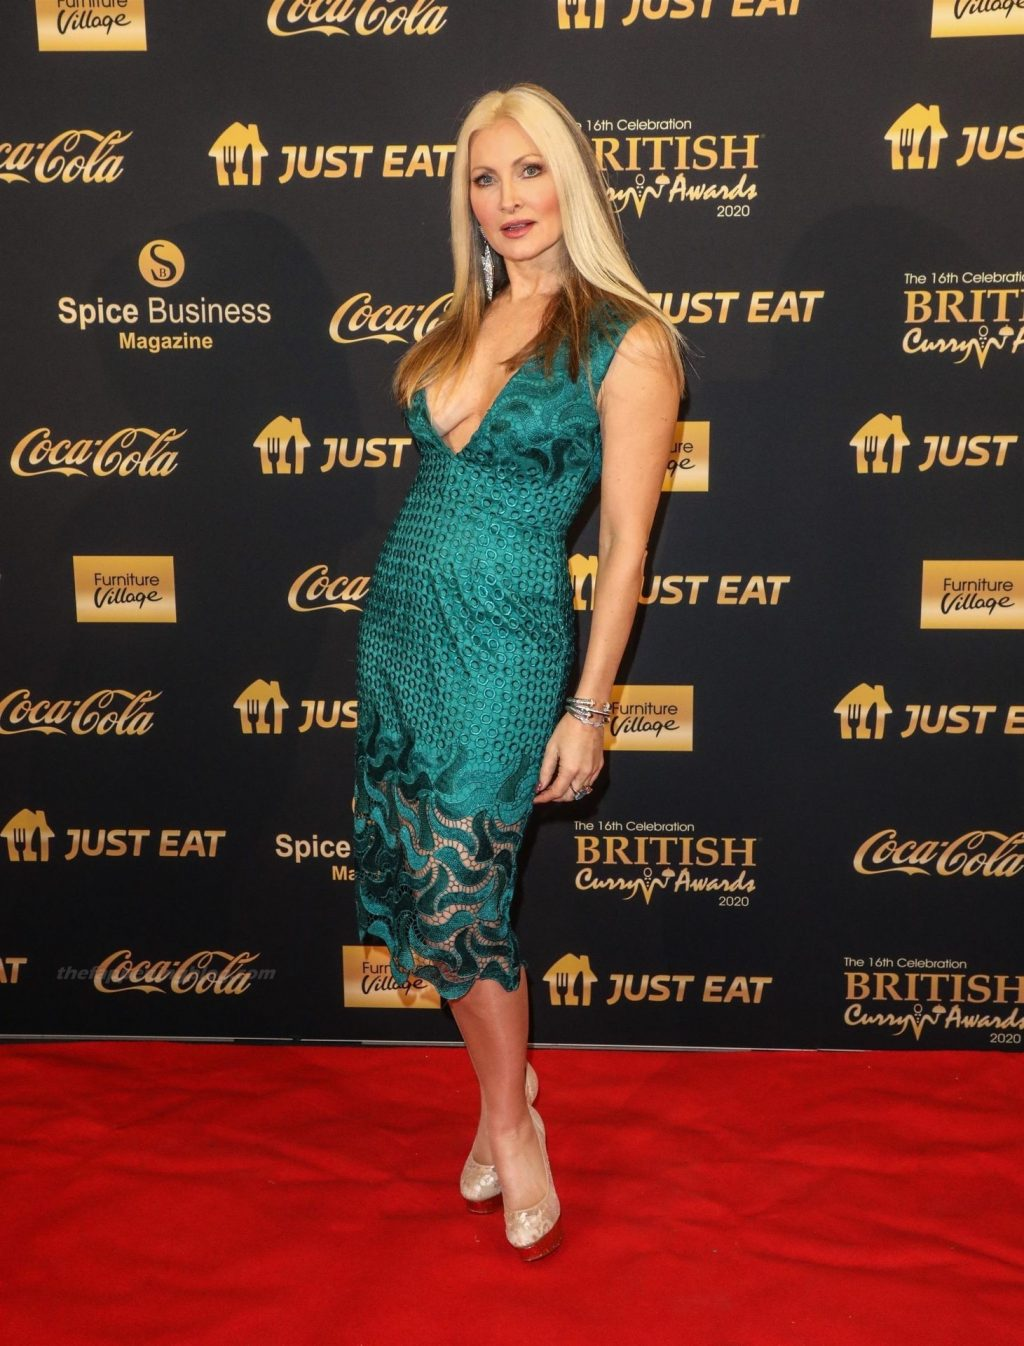 Caprice Bourret Displays Her Tits at The British Curry Awards (19 Photos)